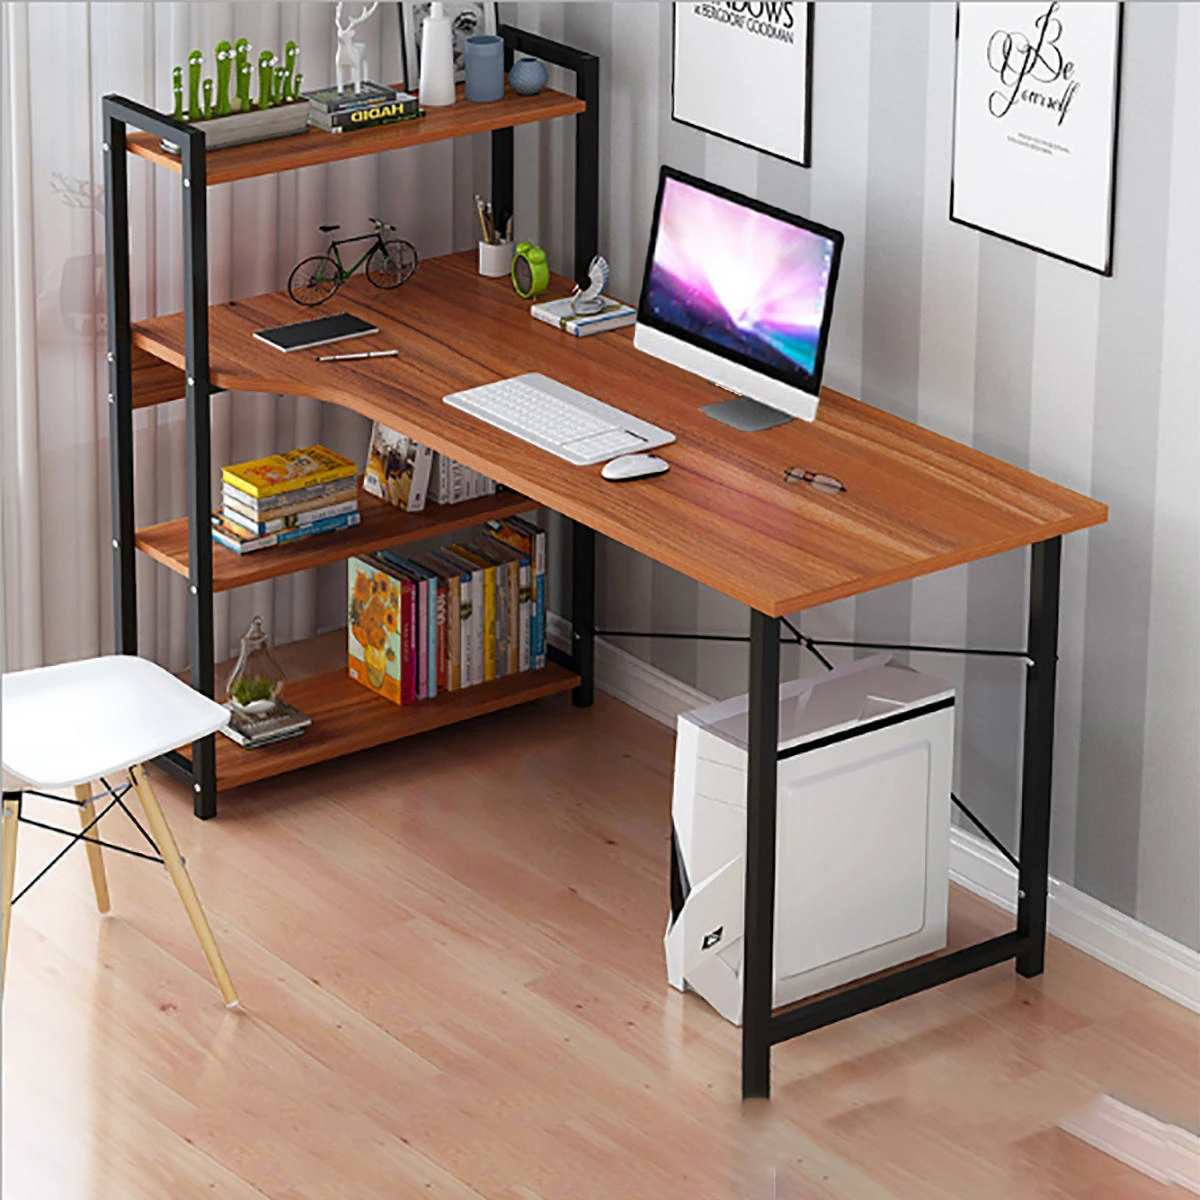 Laptop Desk With Shelves 57 Inch Corner Computer Desk With Cpu Stand Home Office Gaming Table Workstation Study Writing Desk Aliexpress